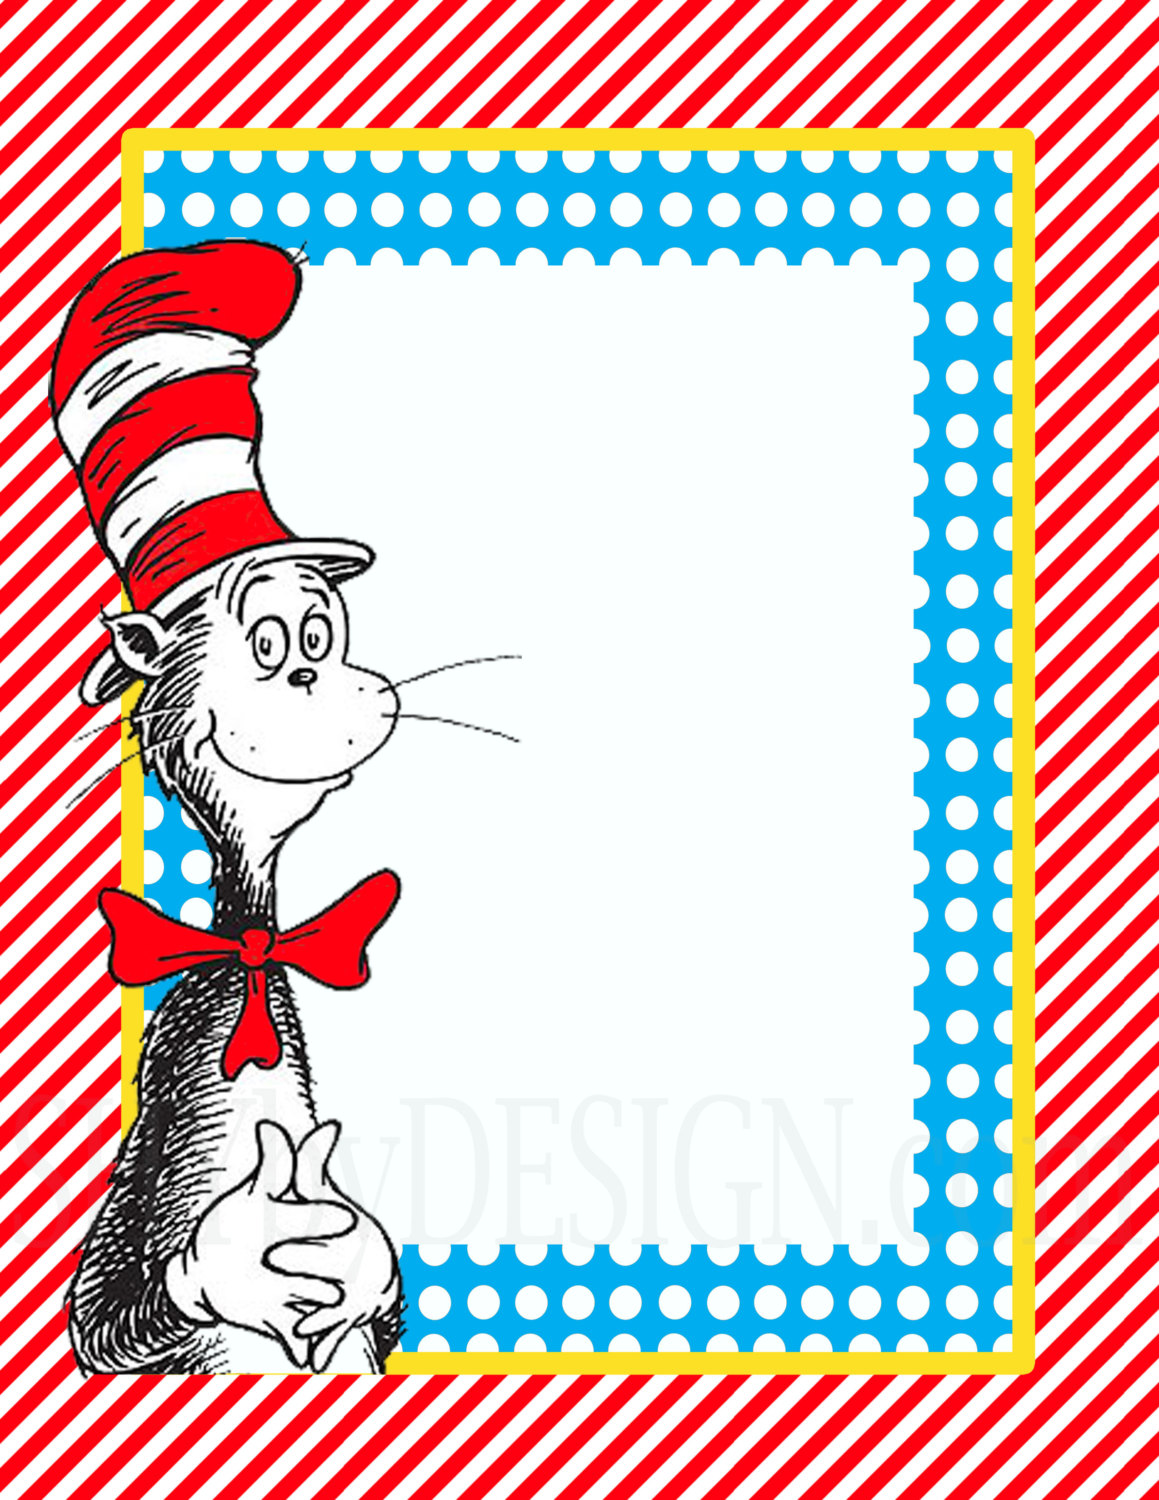 ... Dr. Seuss Templates, Free Dr. Seuss Templates and Free Dr. Seuss Baby